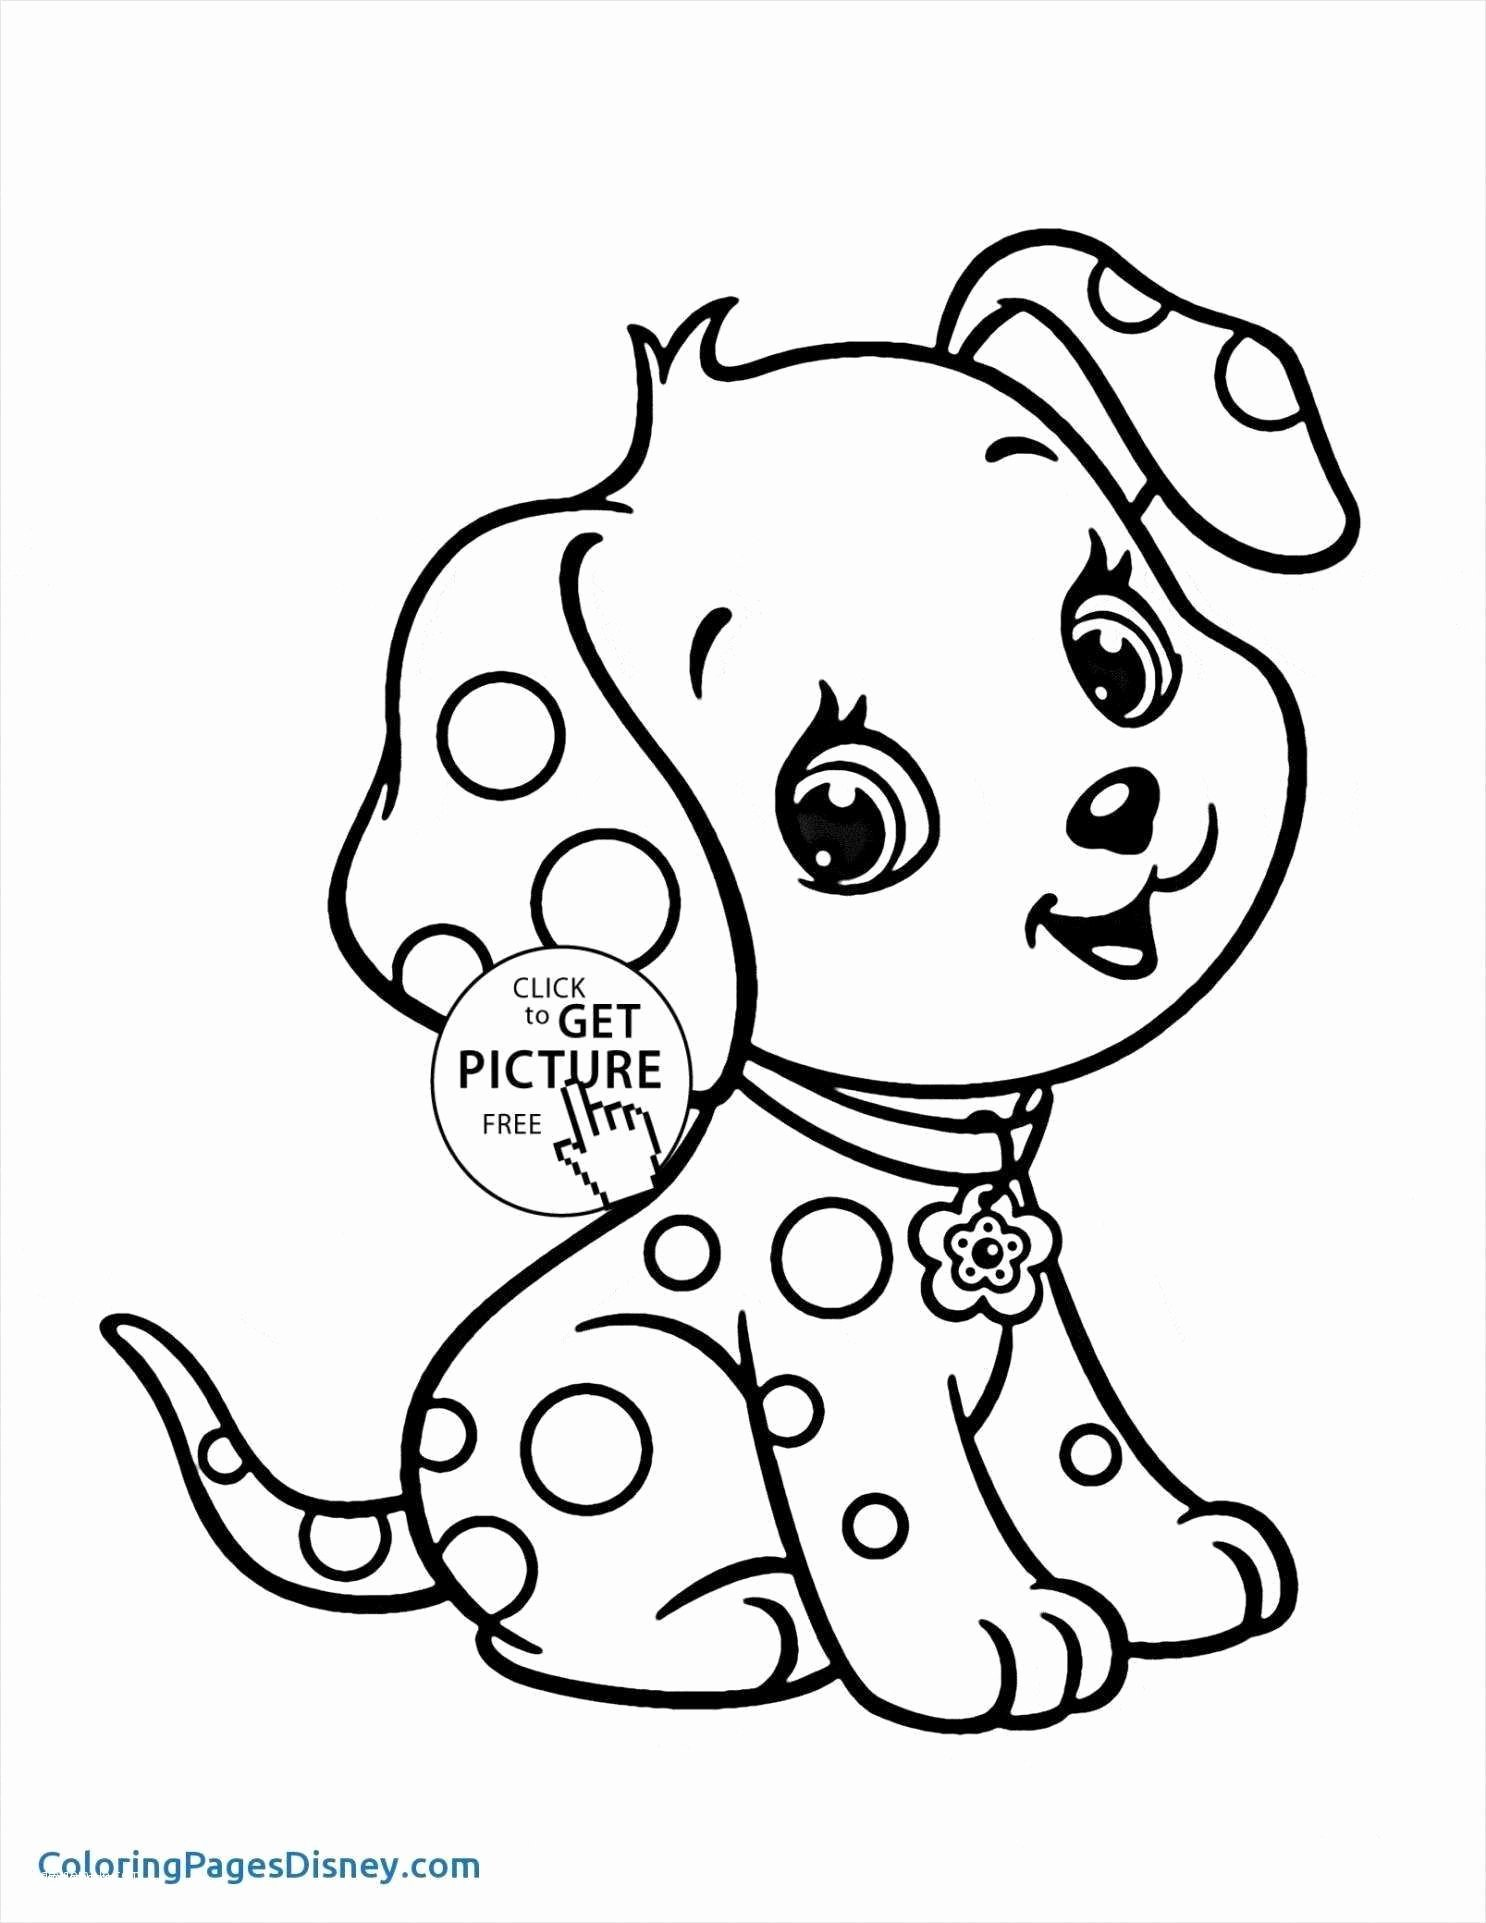 Coloring Worksheets for Preschoolers top Colouring to Print Azspringtrainingexperience